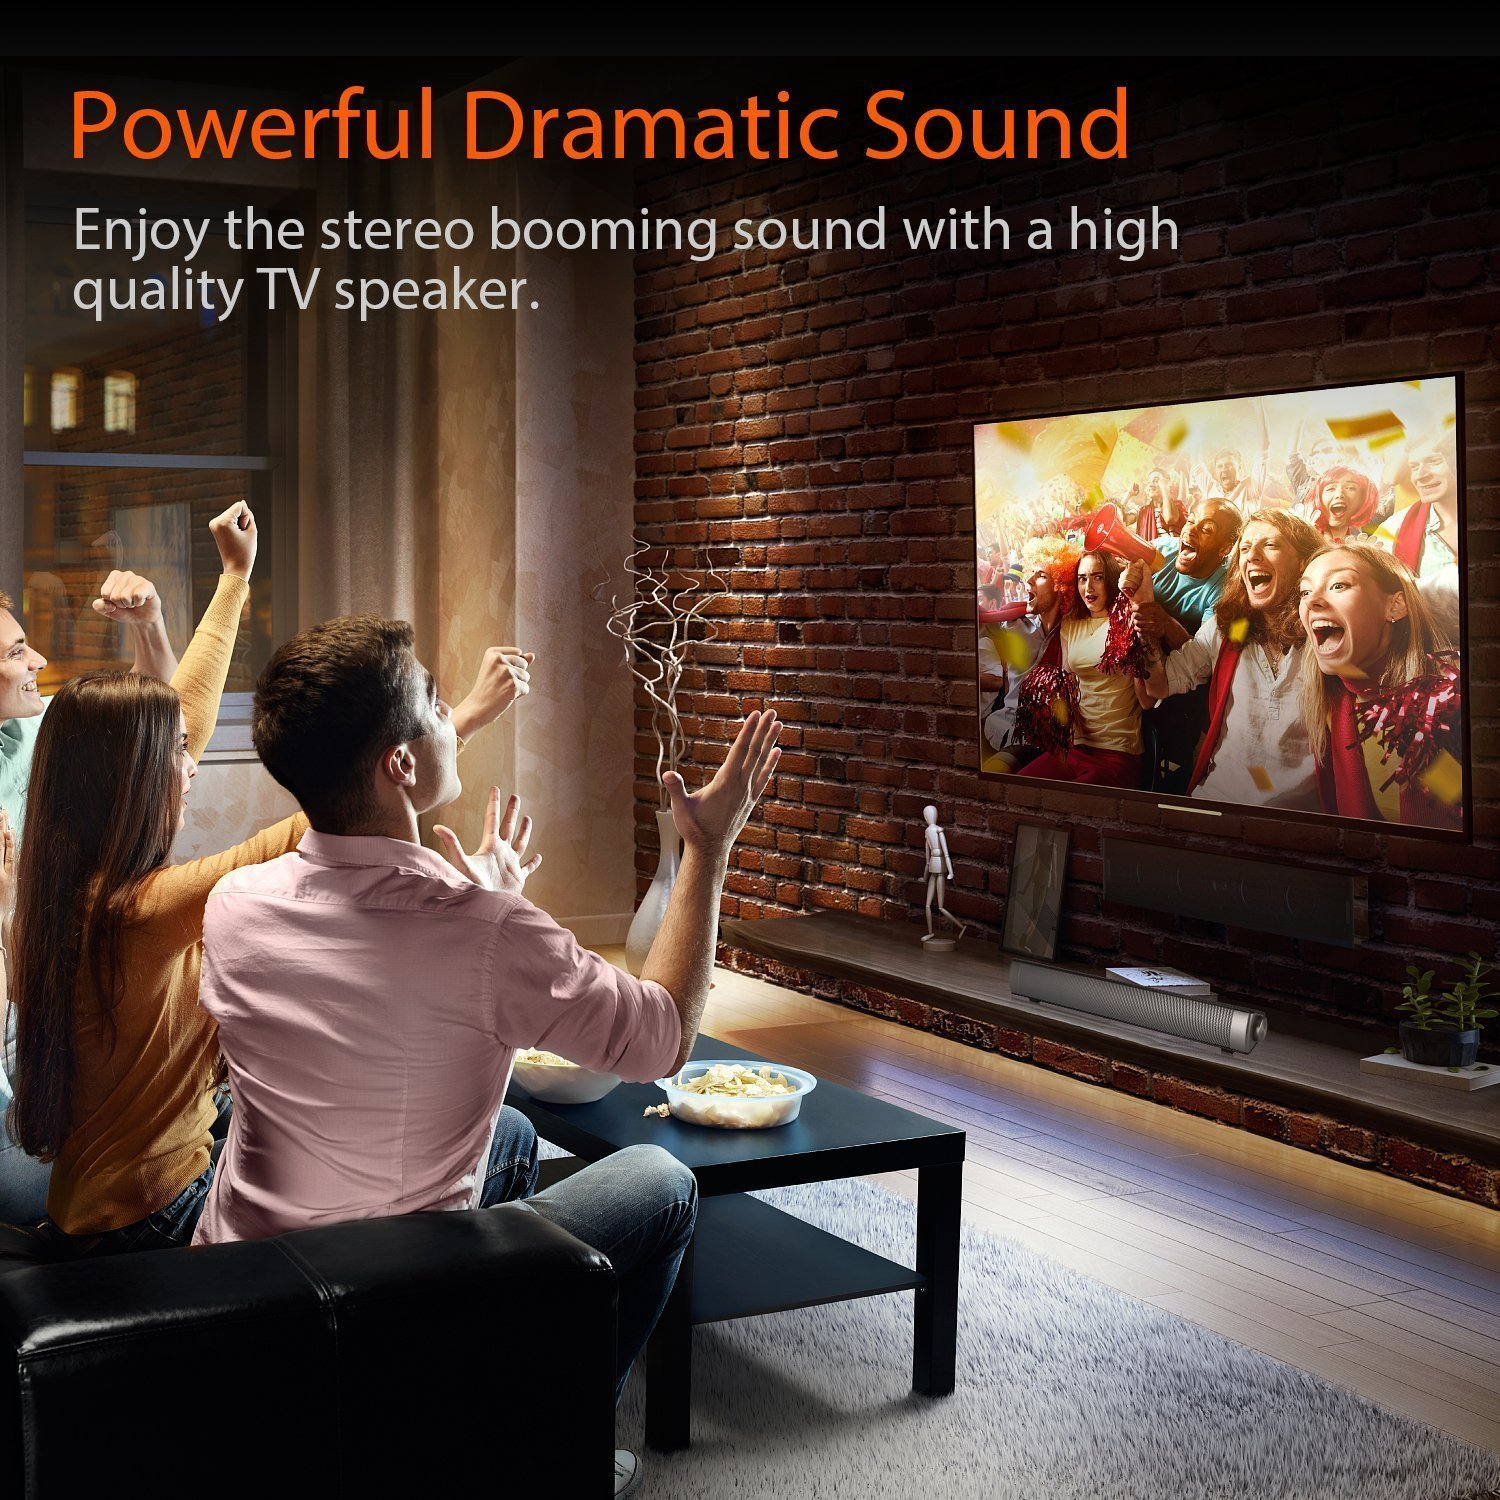 Sound Bar TV Soundbar Wired and Wireless Bluetooth Home Theater TV Speaker, Surround Sound Bar for TV, PC, Cellphone (Only Fit for AUX & RCA Audio output tv) by FoolHome (Image #4)